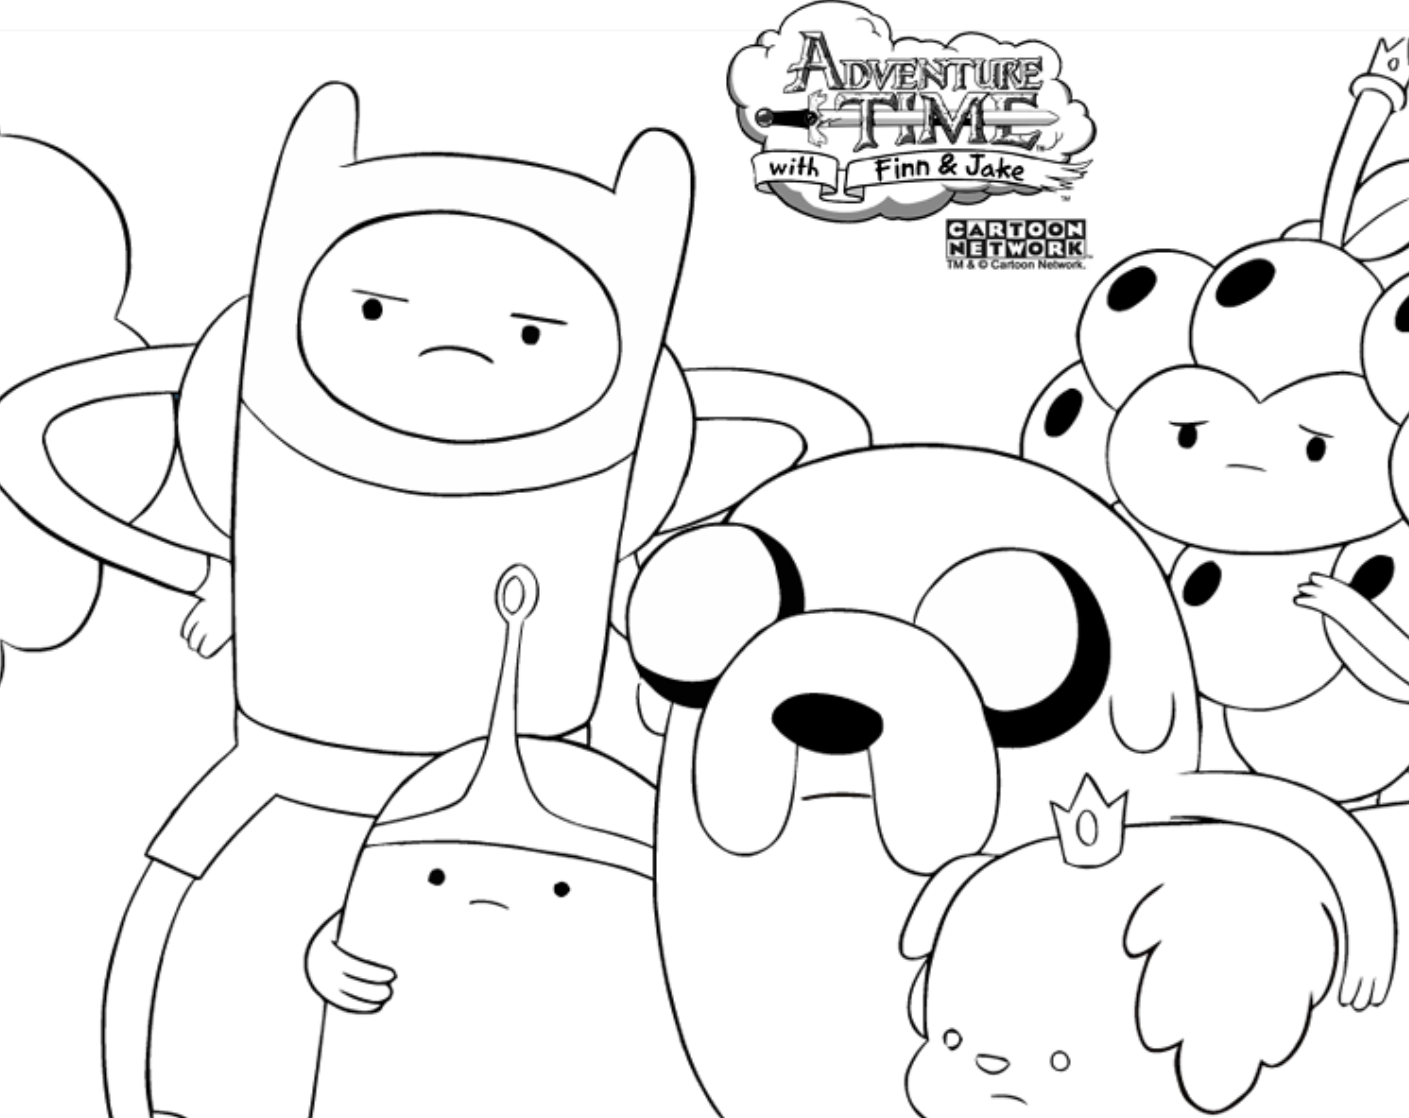 14 Coloring Pictures Adventure Time